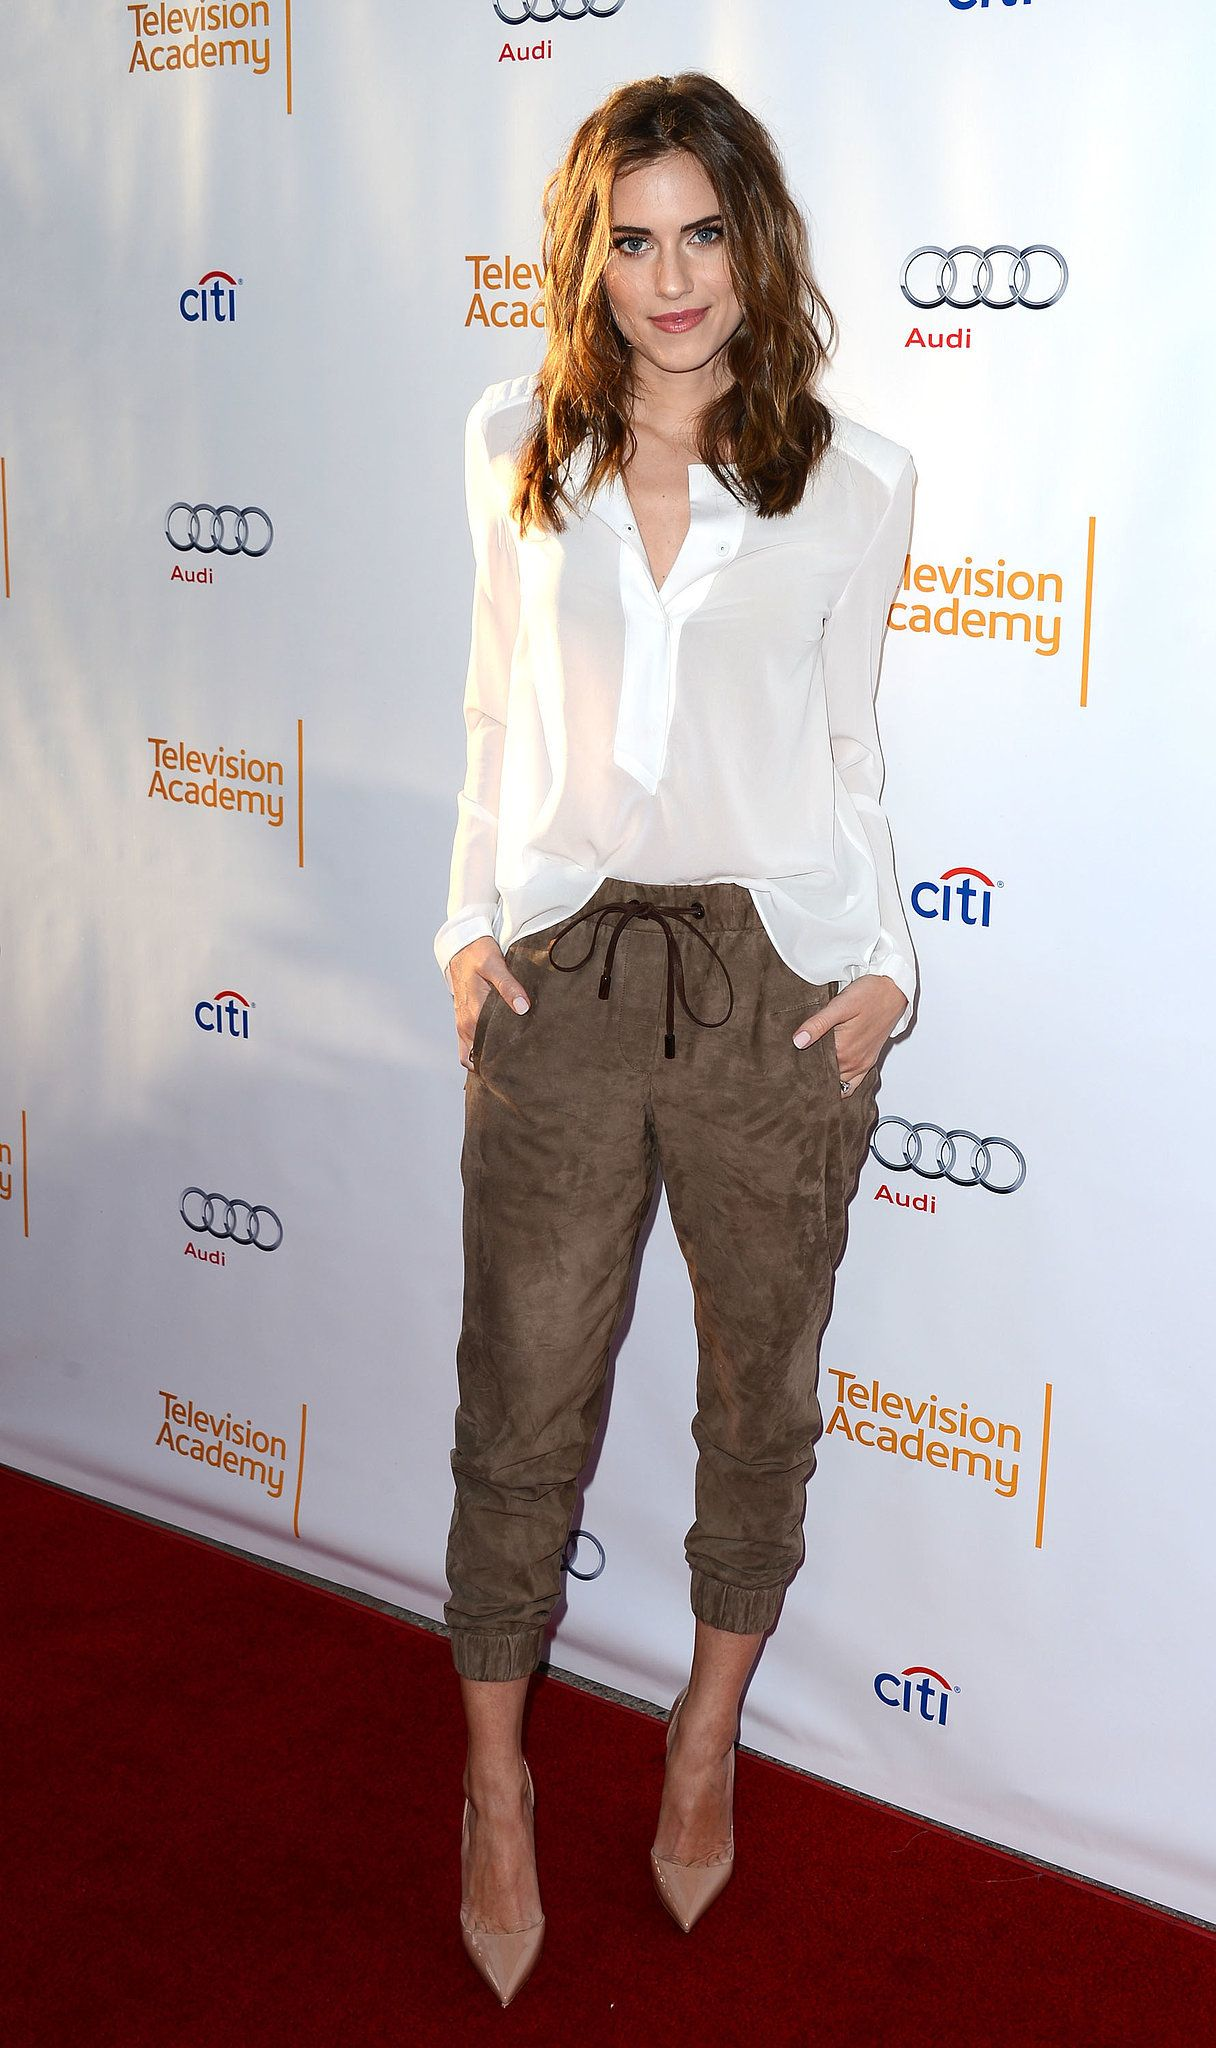 Allison Williams at the Television Academy Presents An Evening With Girls.